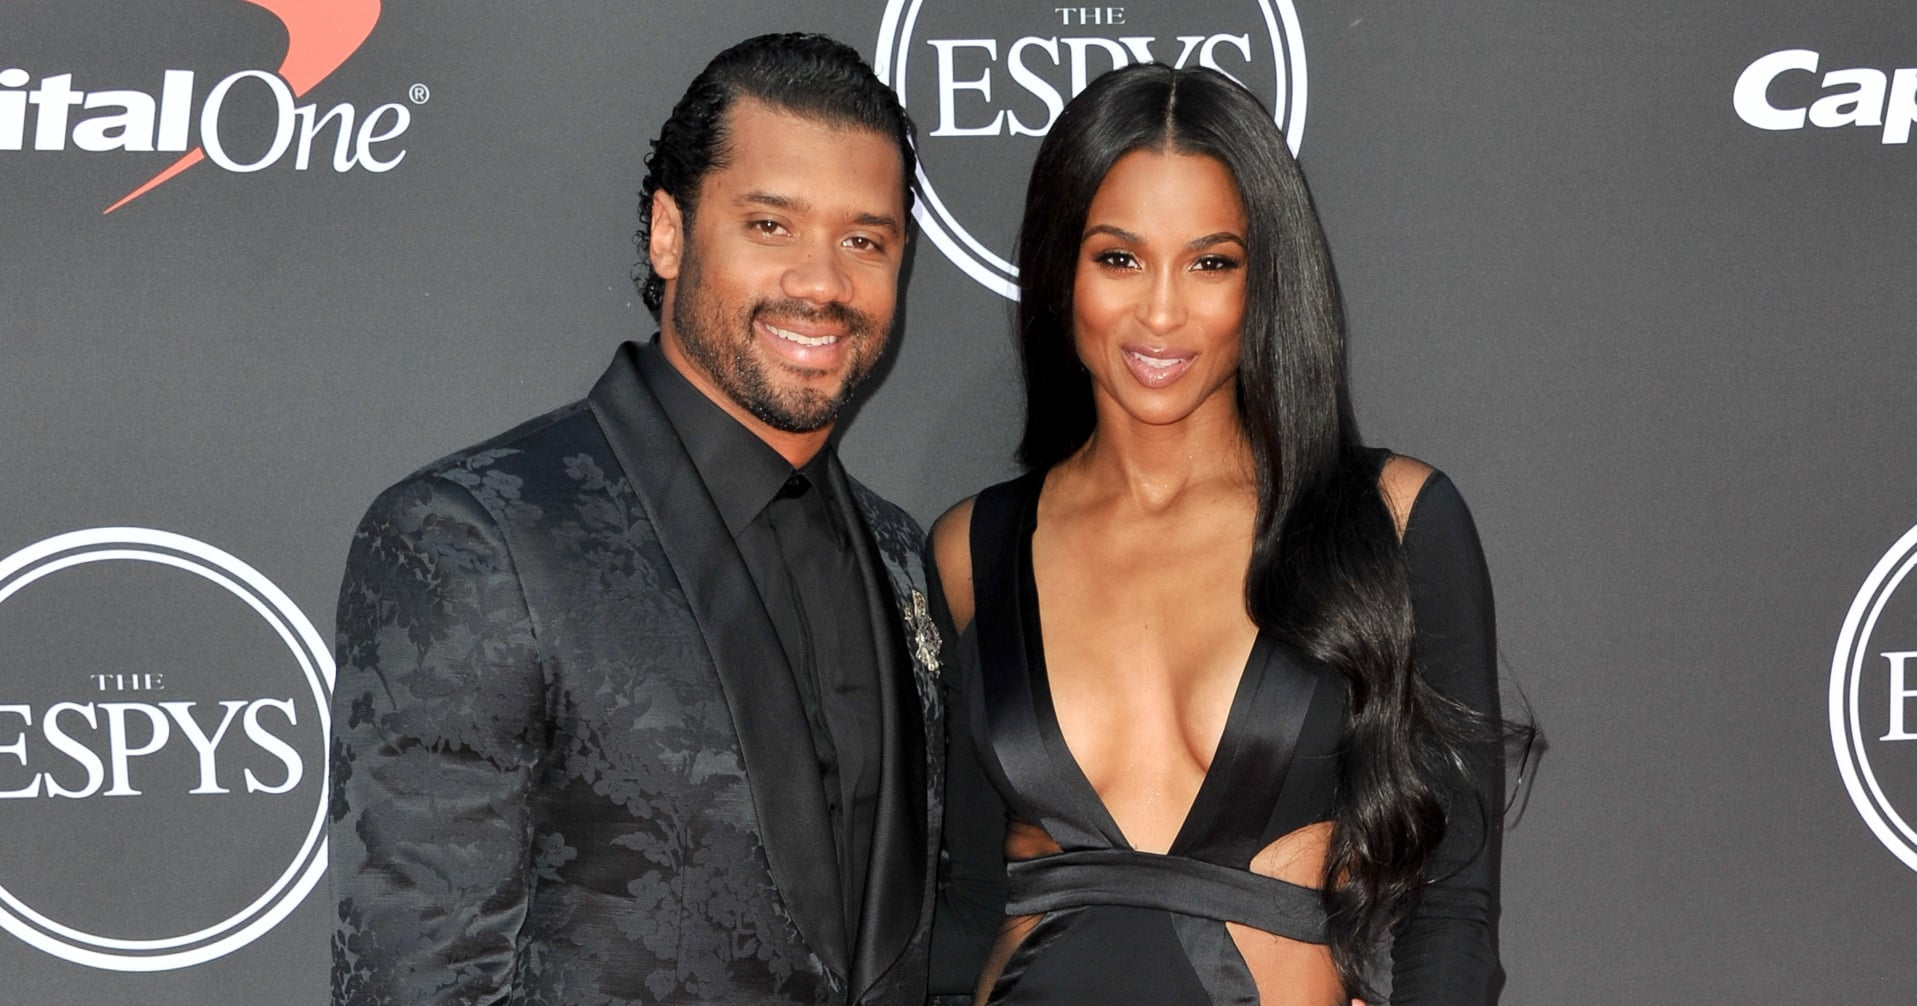 Ciara and Russell Wilson Enjoy Romantic Miami Date Night After Pregnancy Announcement